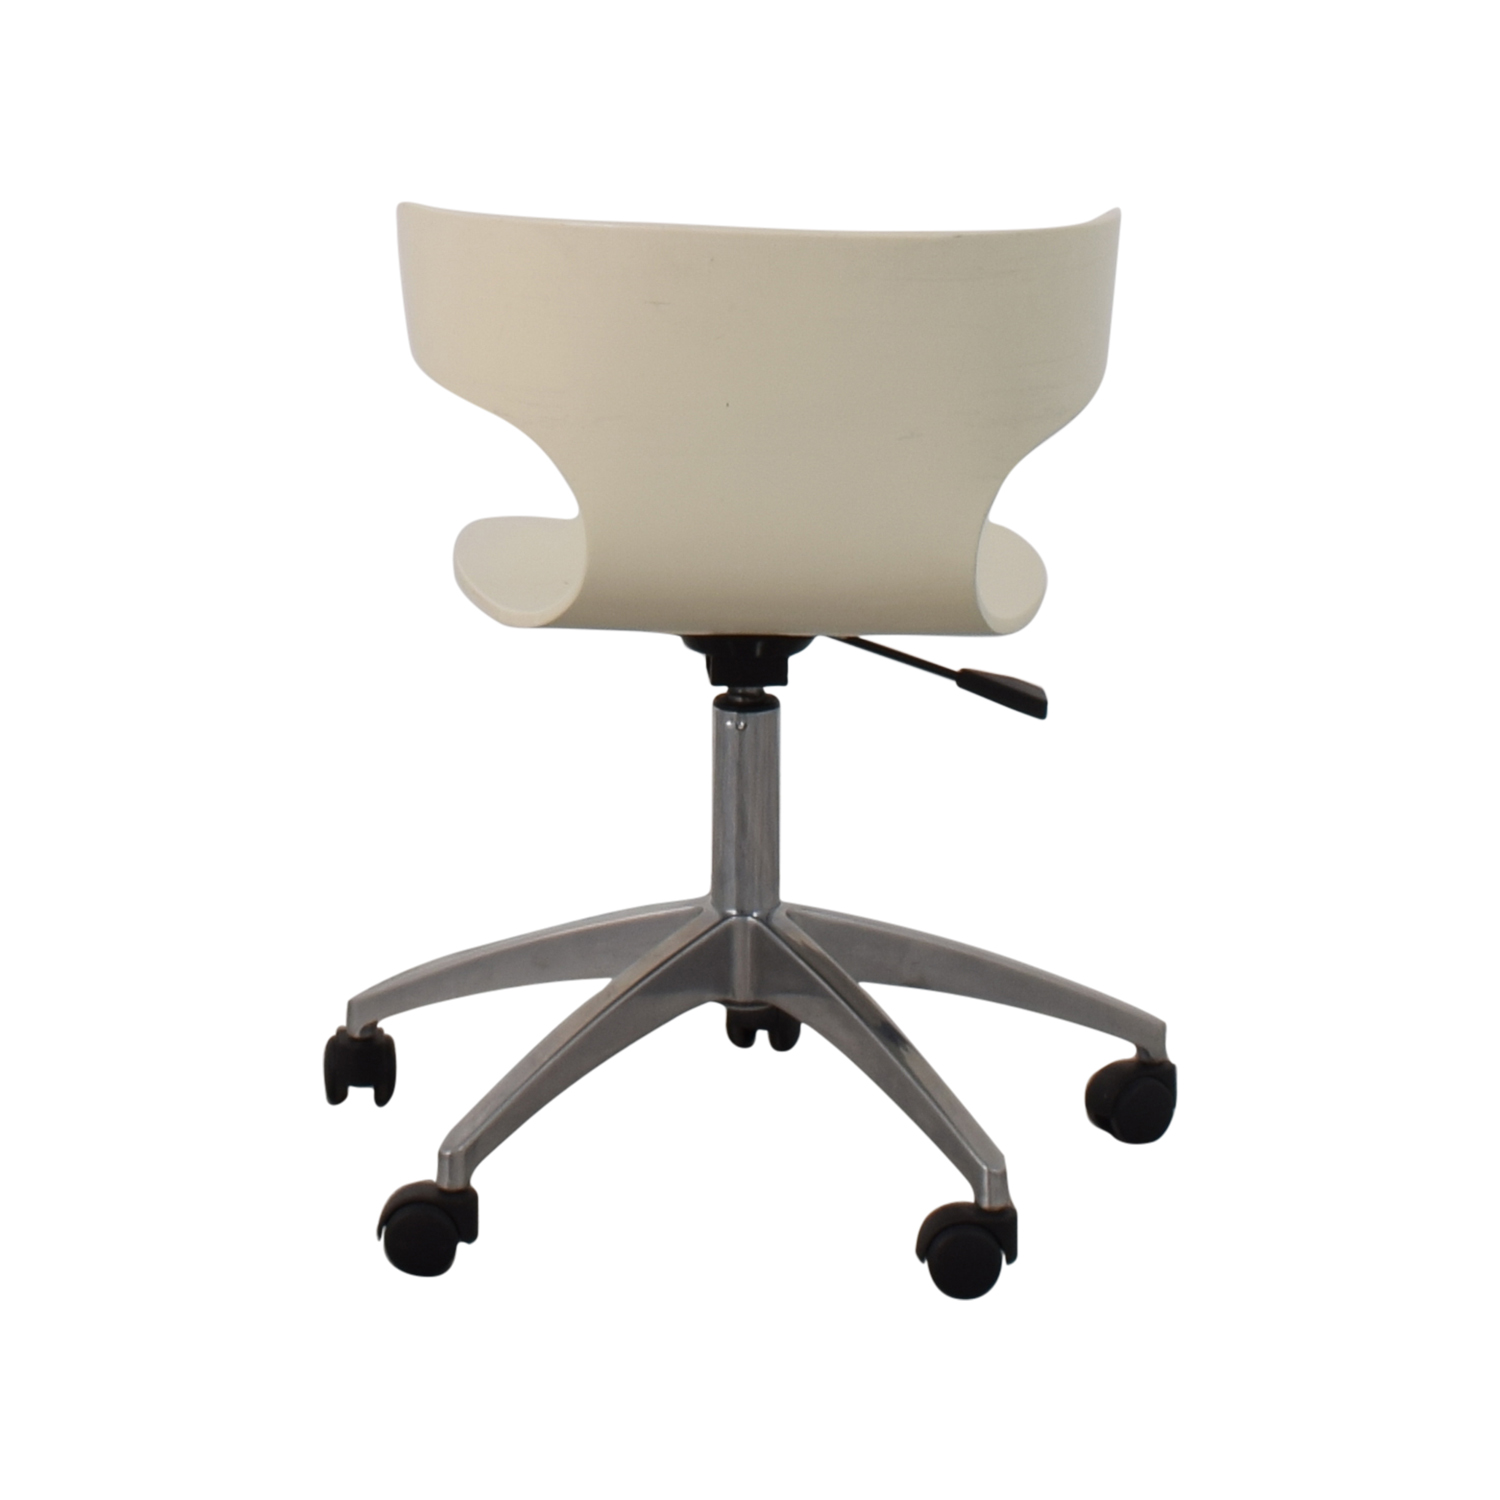 West Elm West Elm White Modern Chair with Casters nyc